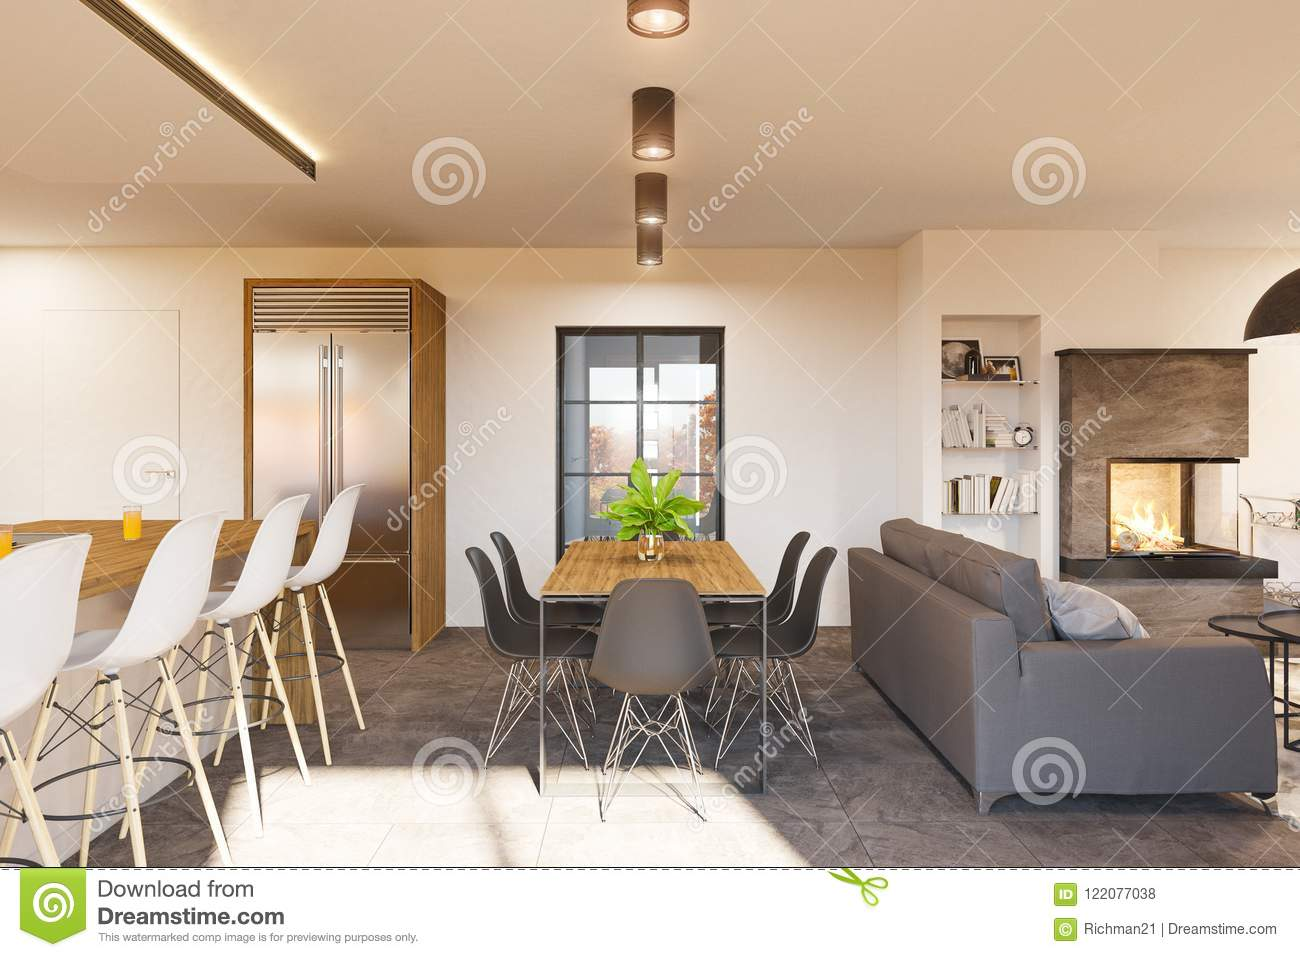 3d render modern living room and kitchen interior design with fireplace stock illustration for Interior design fireplace living room